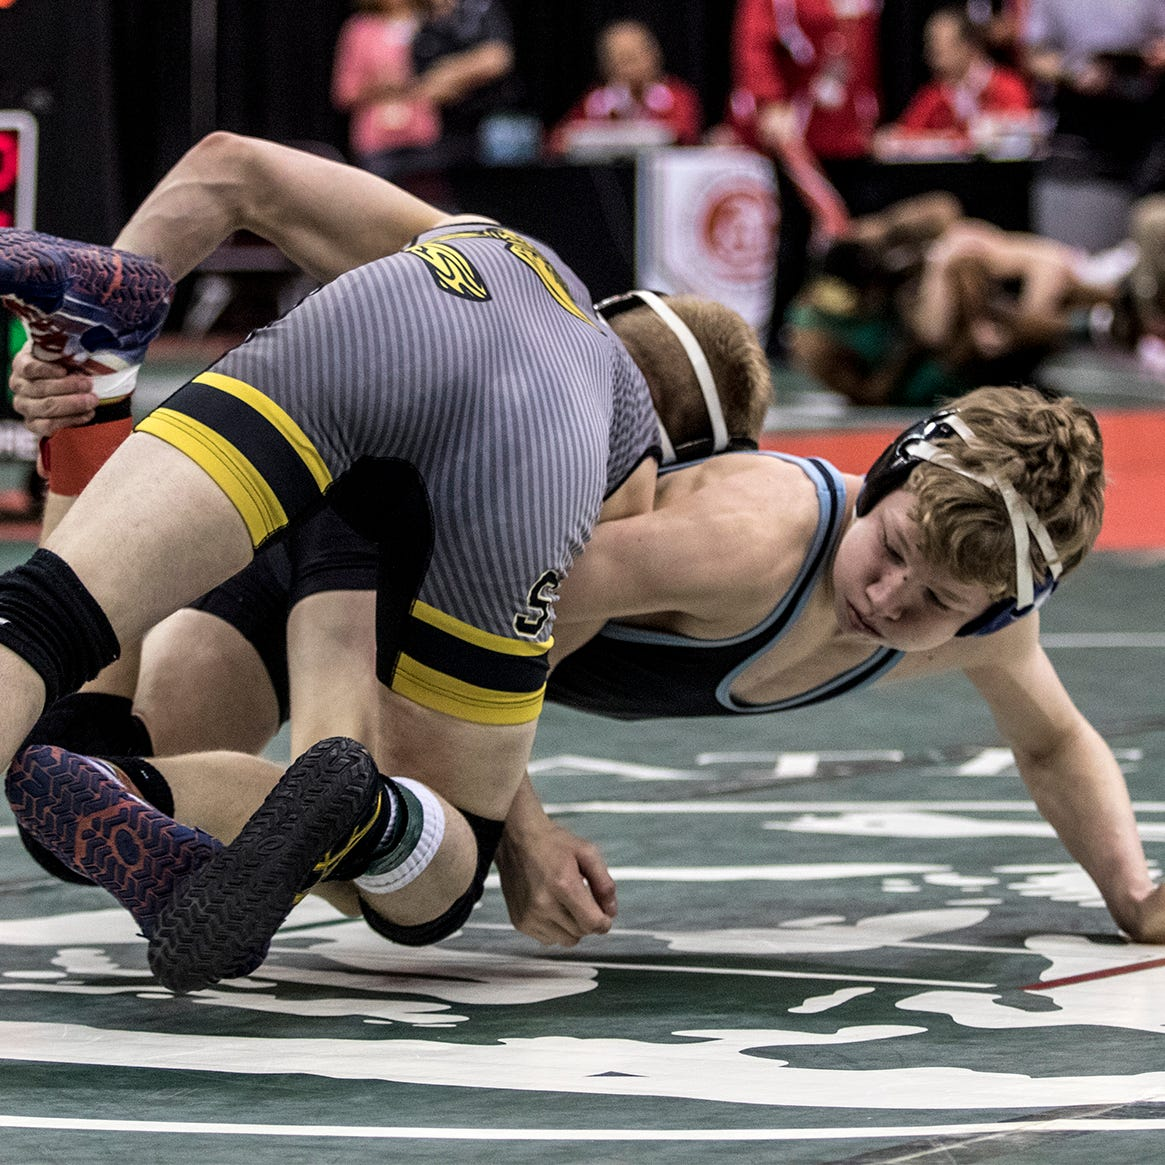 River Valley wrestlers learn lessons at state tournament